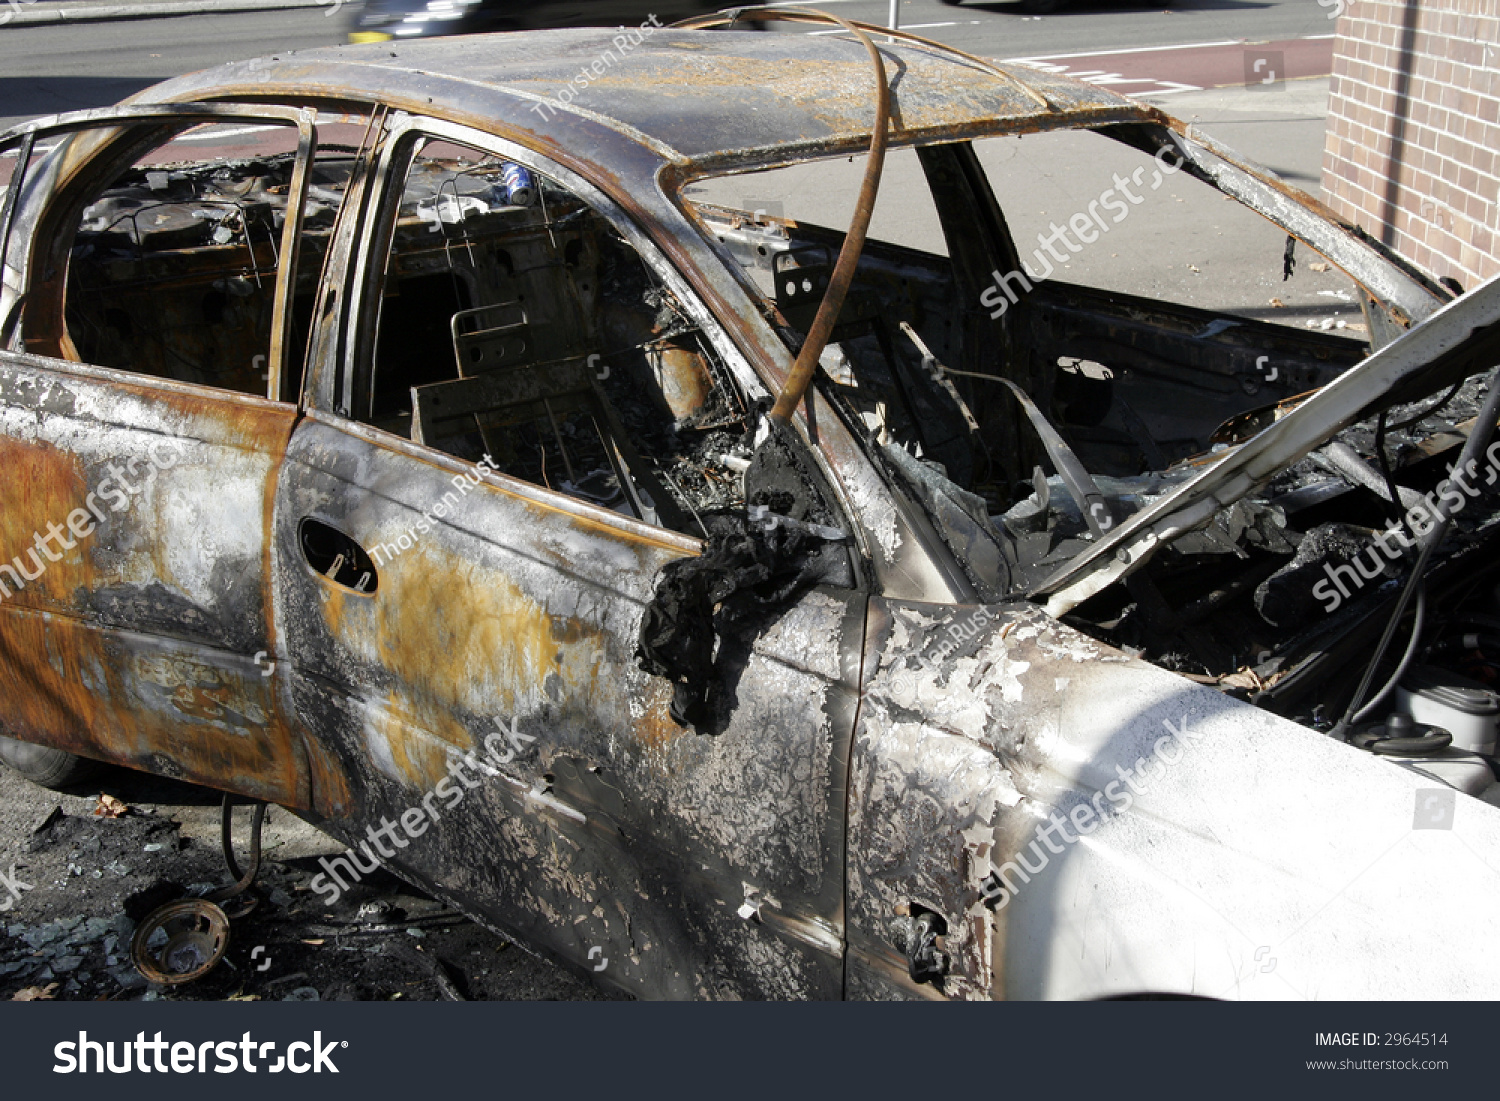 wrecked abandoned burnt out car with melted interior fire damage stock photo 2964514. Black Bedroom Furniture Sets. Home Design Ideas